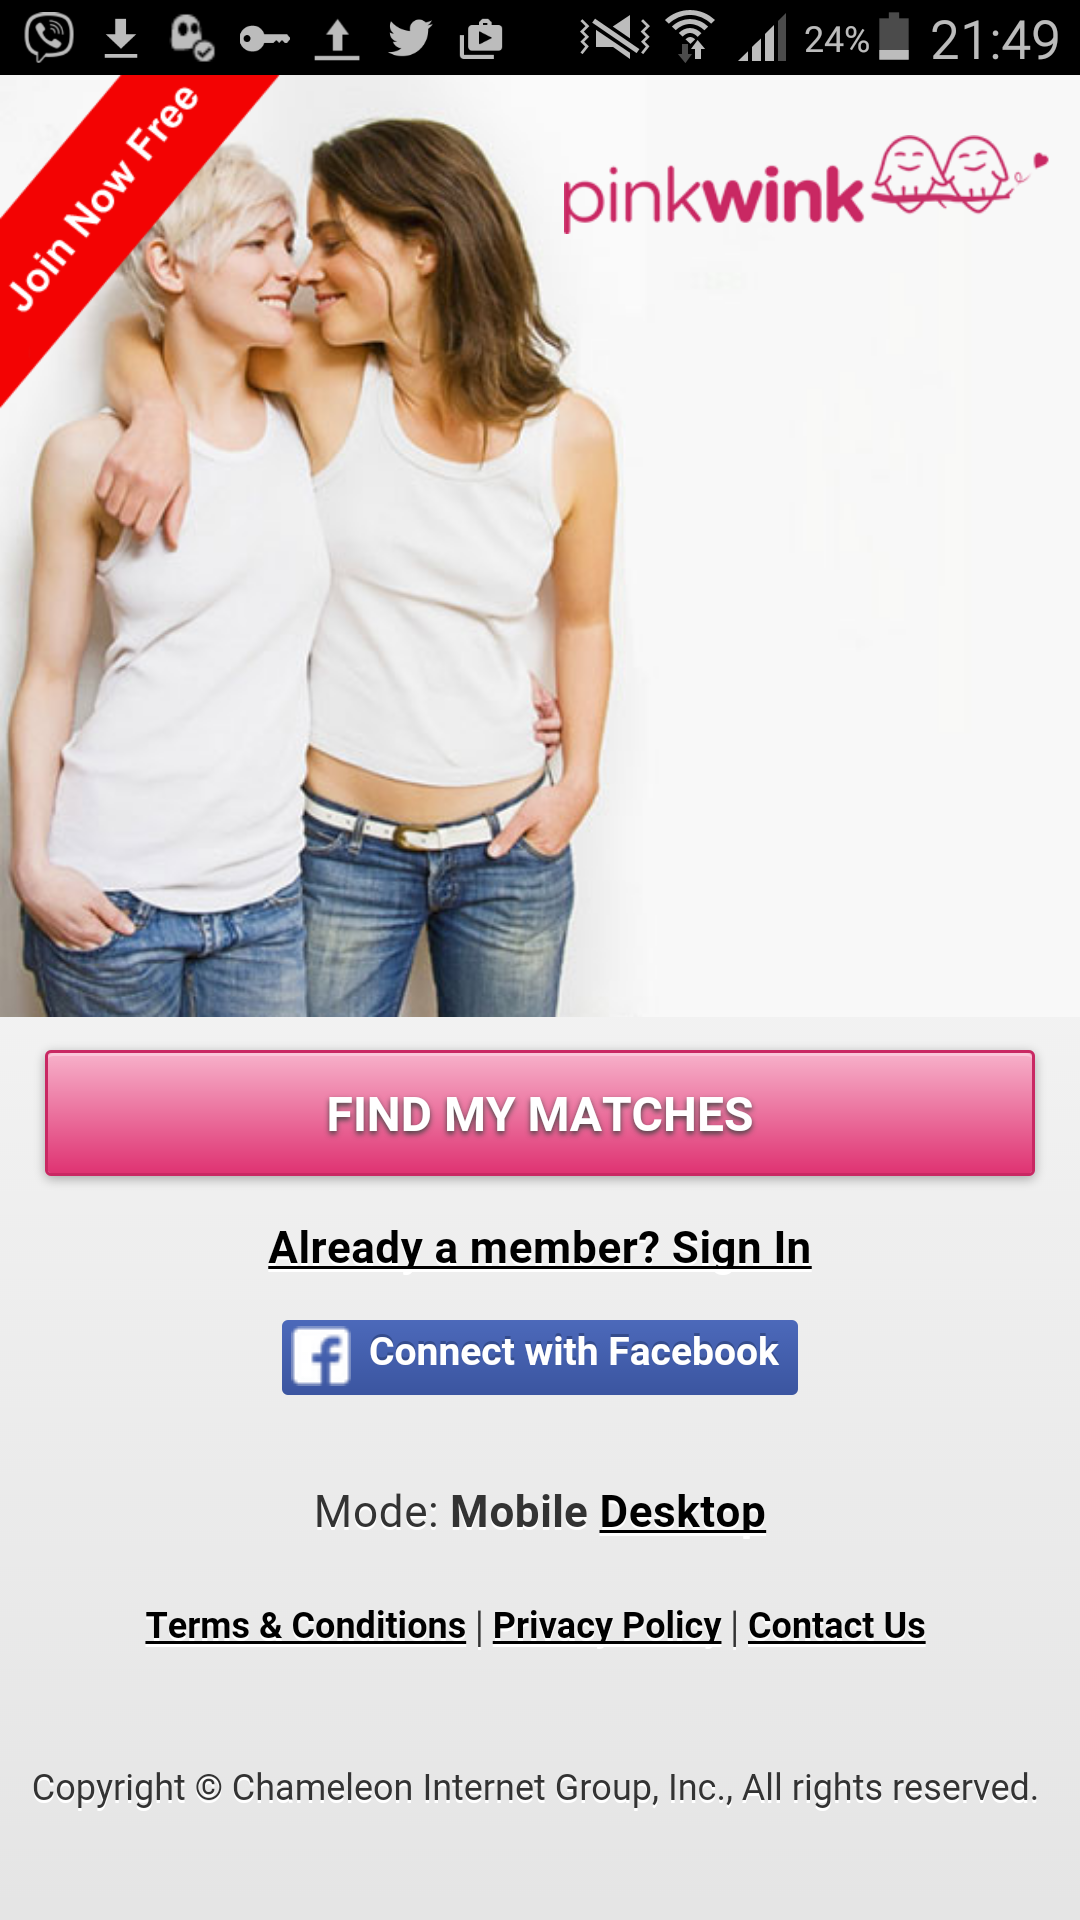 wathena lesbian dating site Looking for women seeking women and lasting love connect with lesbian  singles dating and looking for lasting love on our site find out more here.